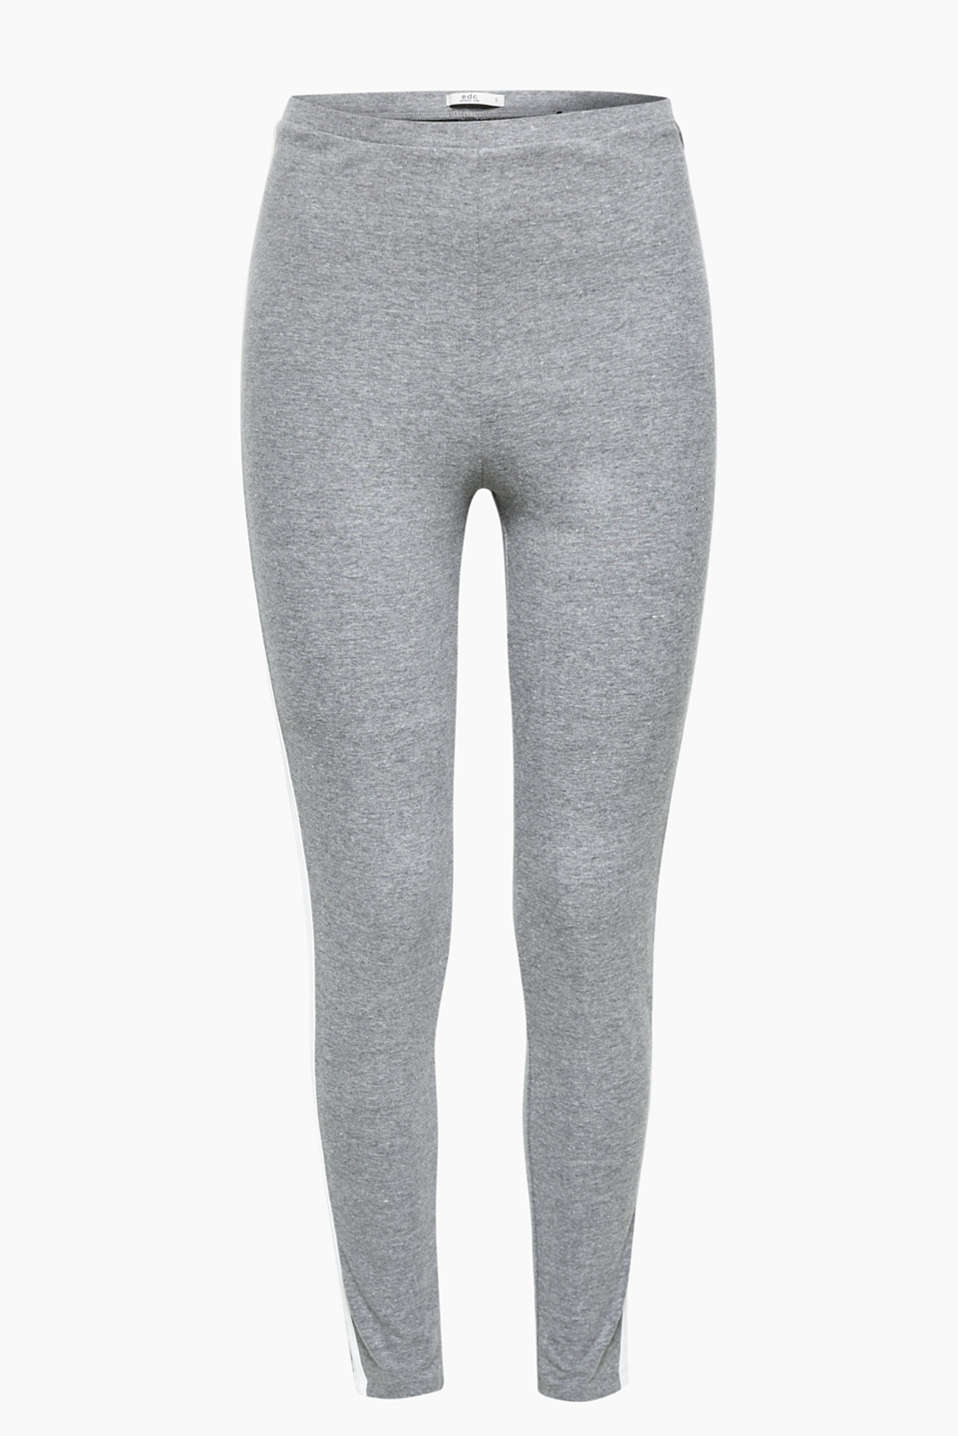 Comfy style with a cool twist: grey melange leggings with side stripes, in blended cotton, high percentage of stretch